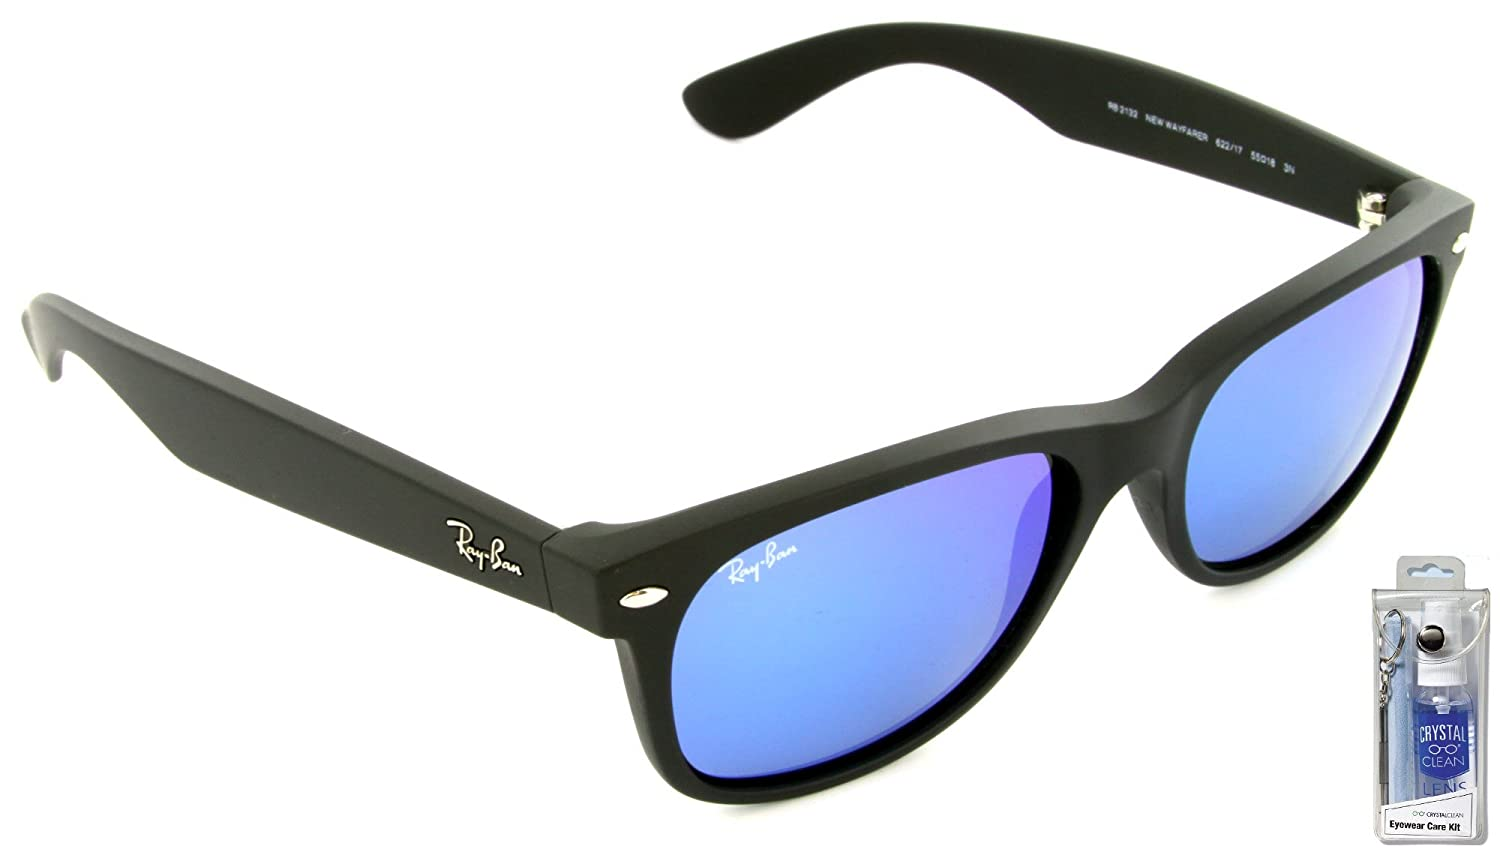 de2ebde71d Amazon.com  Ray Ban RB2132 622 17 55mm Blue Mirror New Wayfarer Sunglasses  Bundle - 2 Items  Clothing